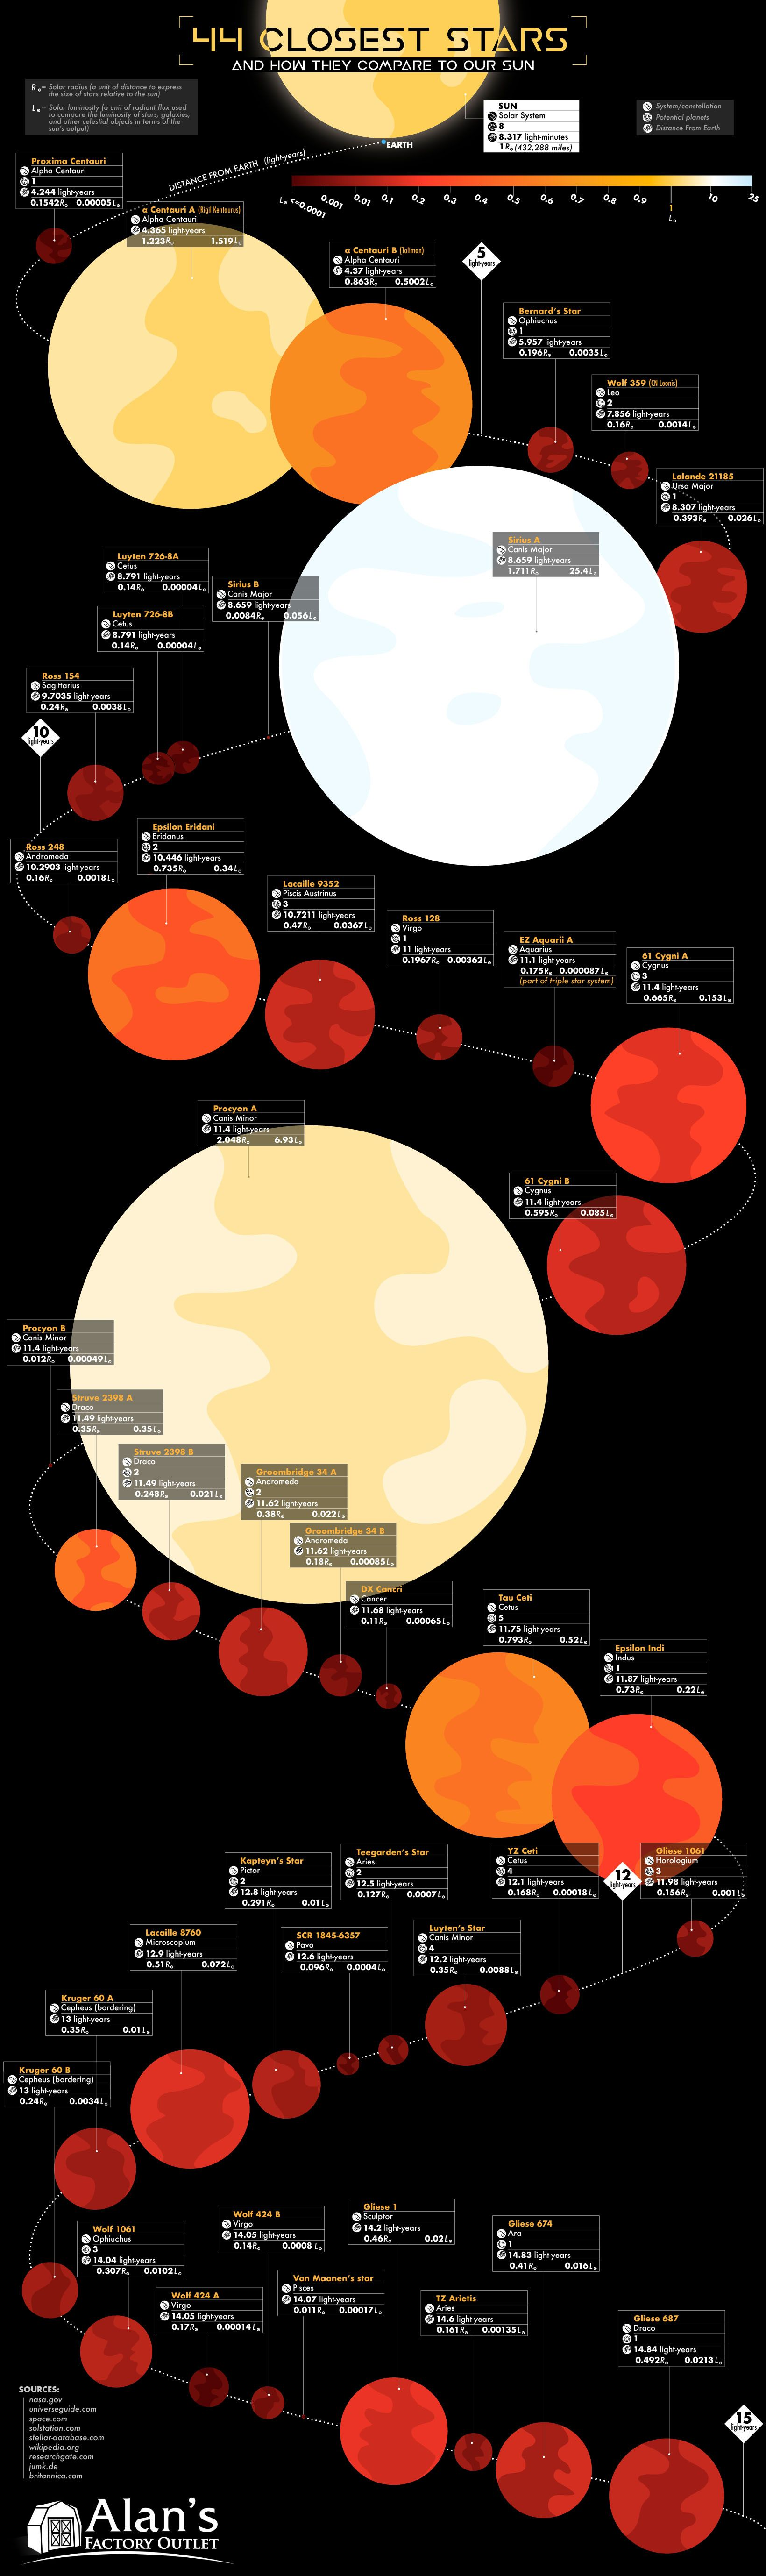 The 44 Closest Stars And How They Compare To Our Sun